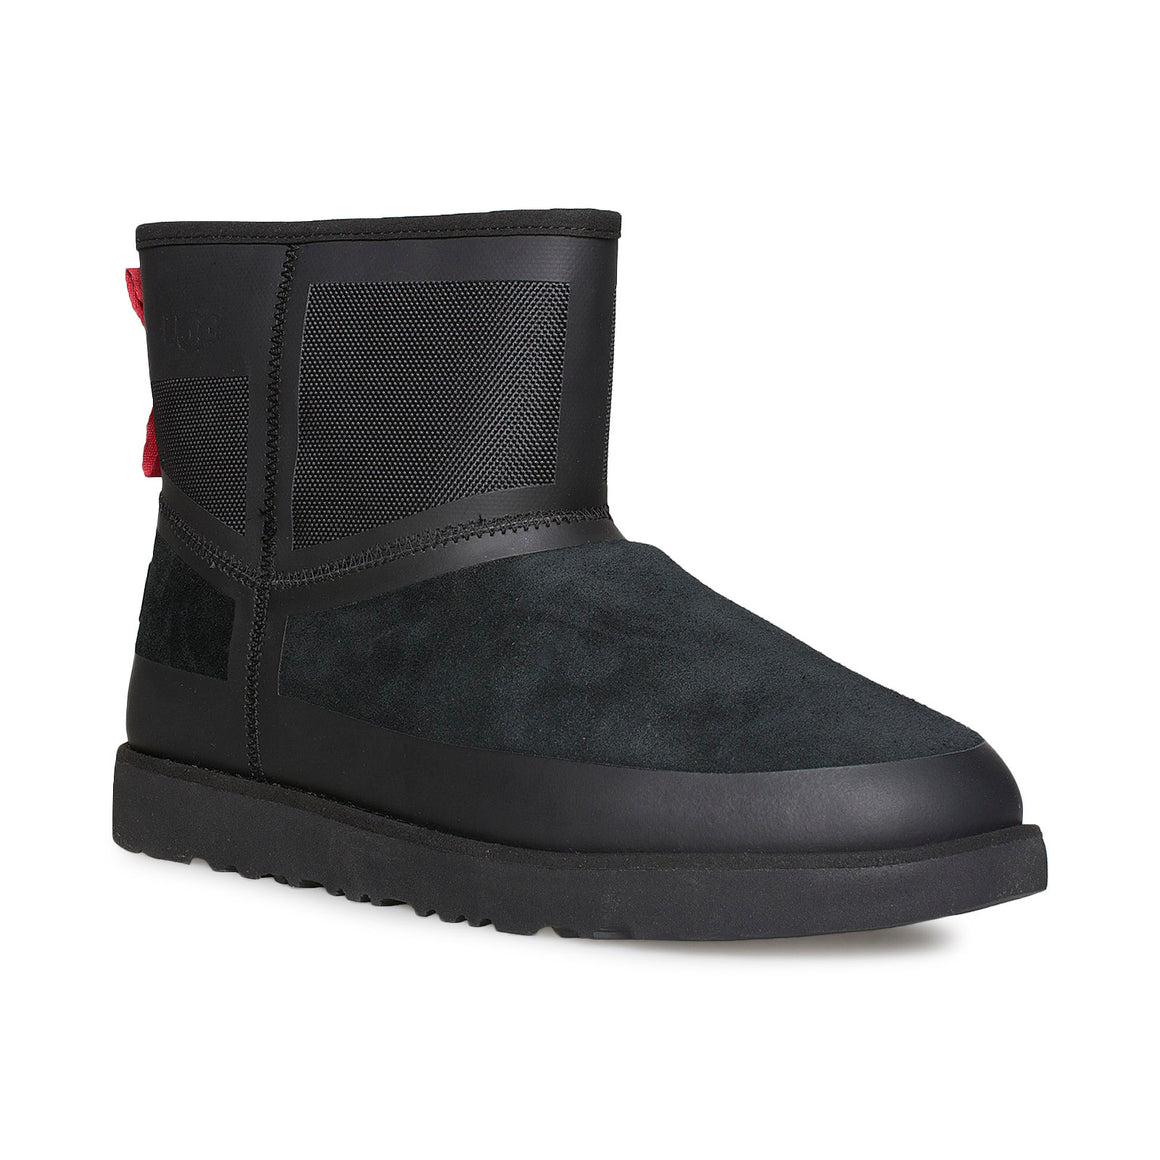 UGG Classic Mini Urban Tech Black Tnl Boots - Men's